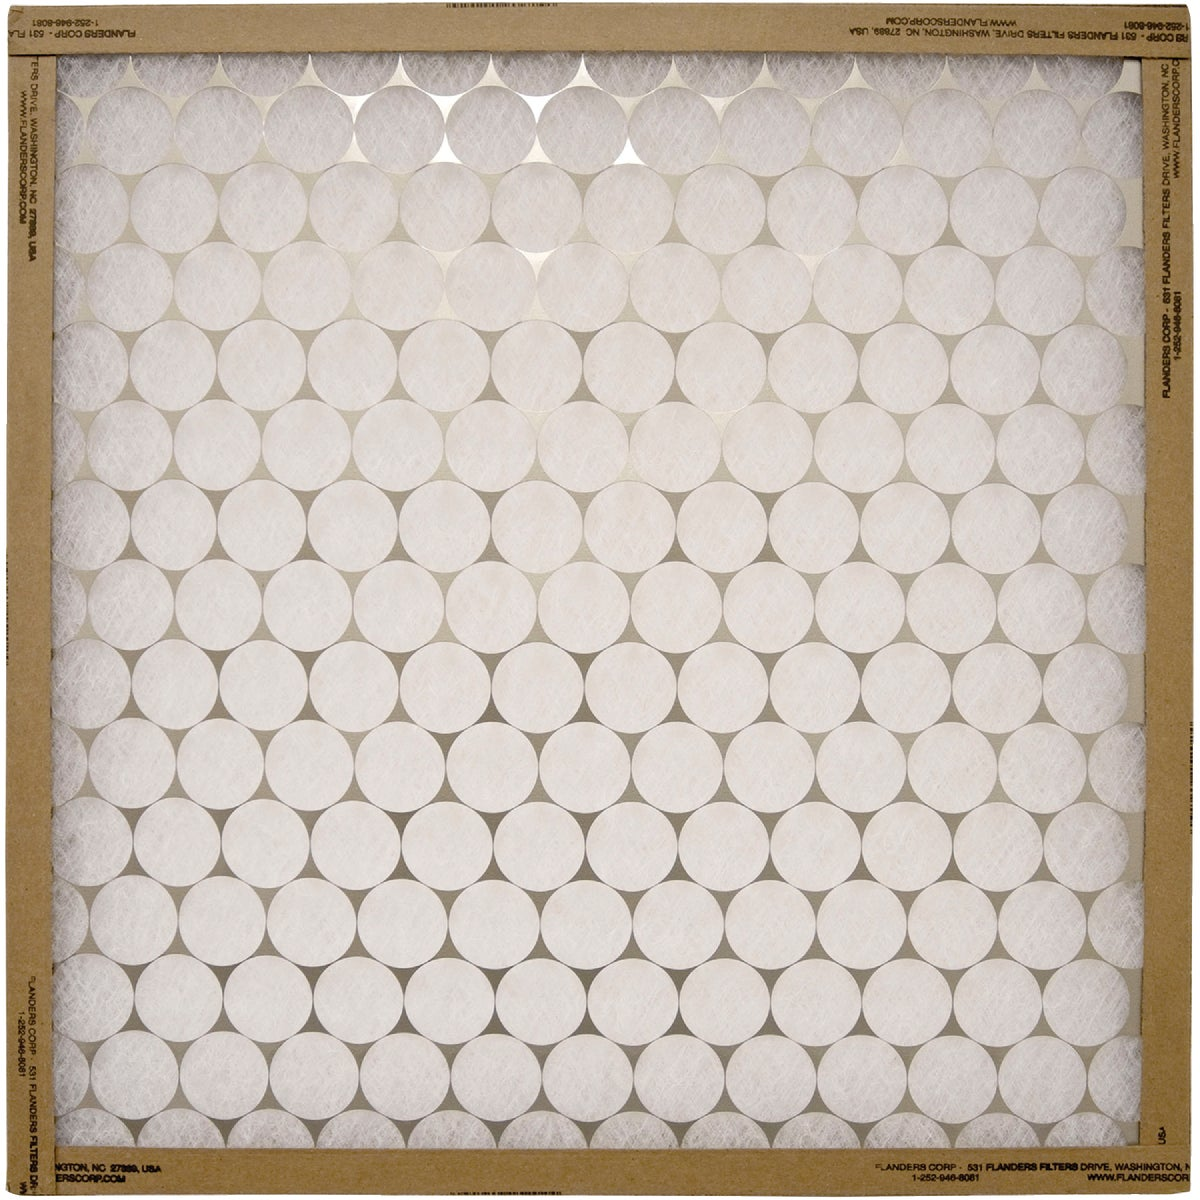 20X20 FURNACE FILTER - 10255.012020 by Flanders Corp